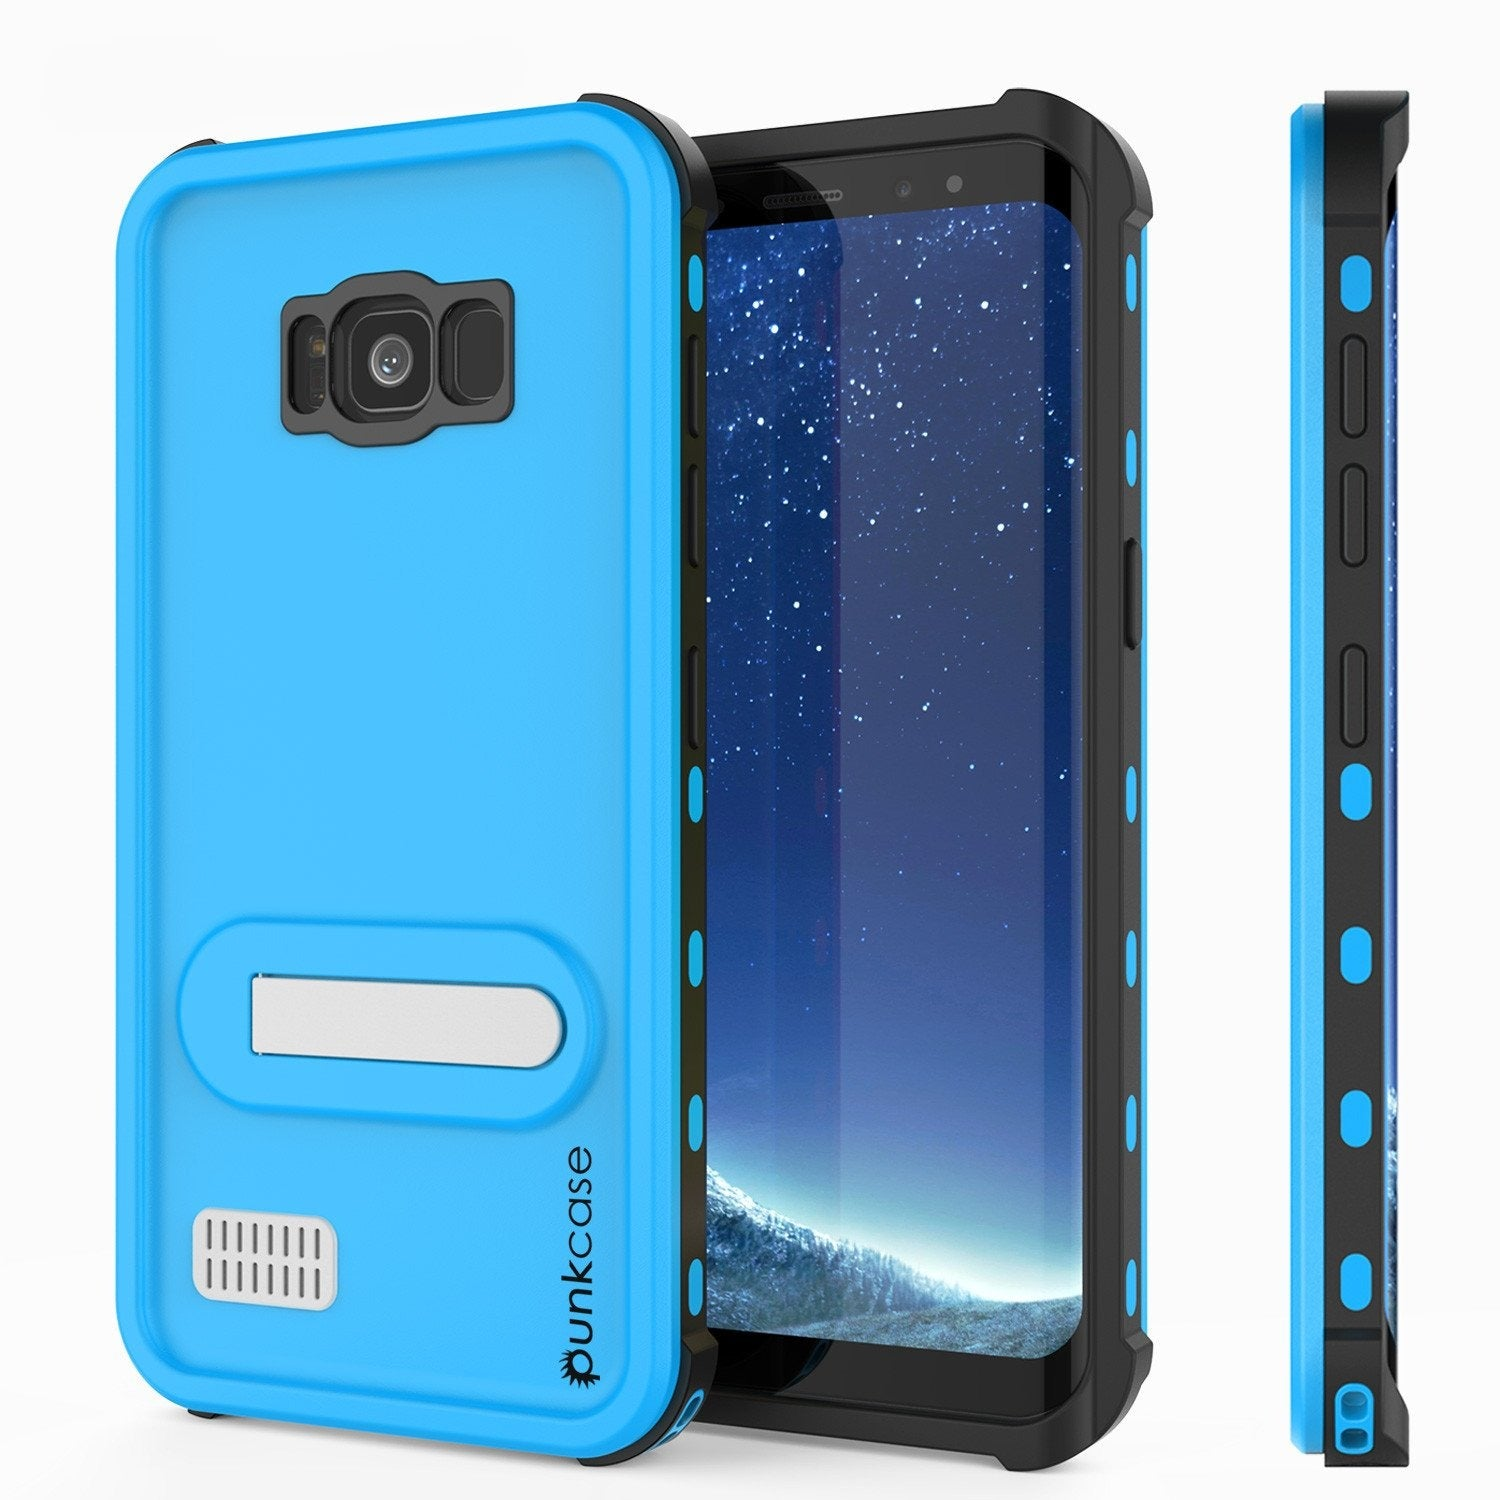 Galaxy S8 Waterproof Case, Punkcase [KickStud Series] [Slim Fit] [IP68 Certified] [Shockproof] [Snowproof] Armor Cover [LIGHT BLUE]